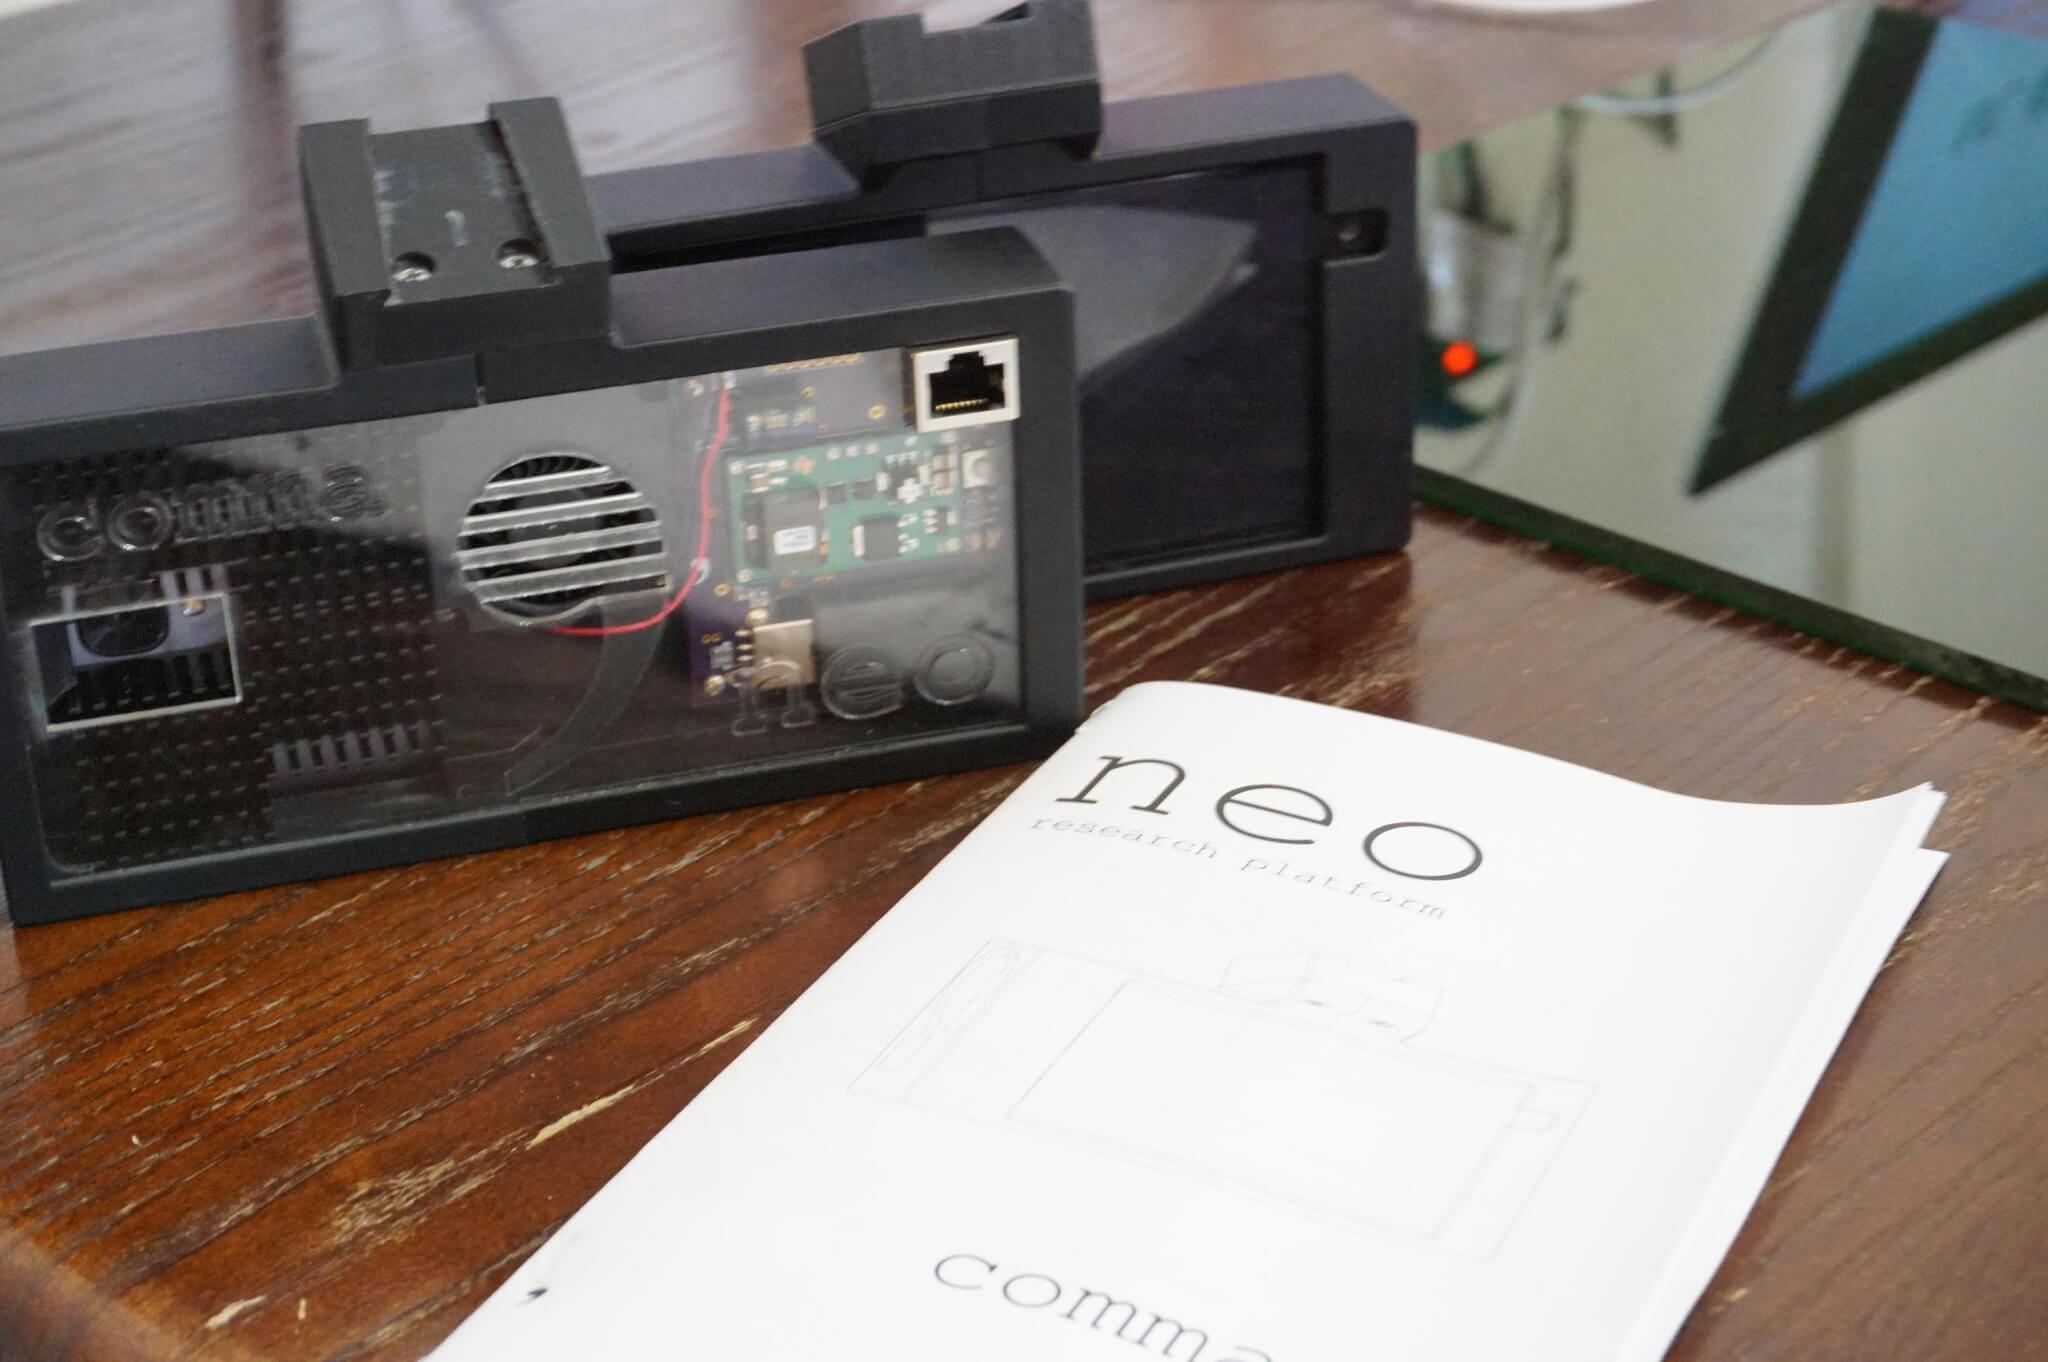 Comma.ai's new technology release: The Comma Neo, an open sourced robotics platform